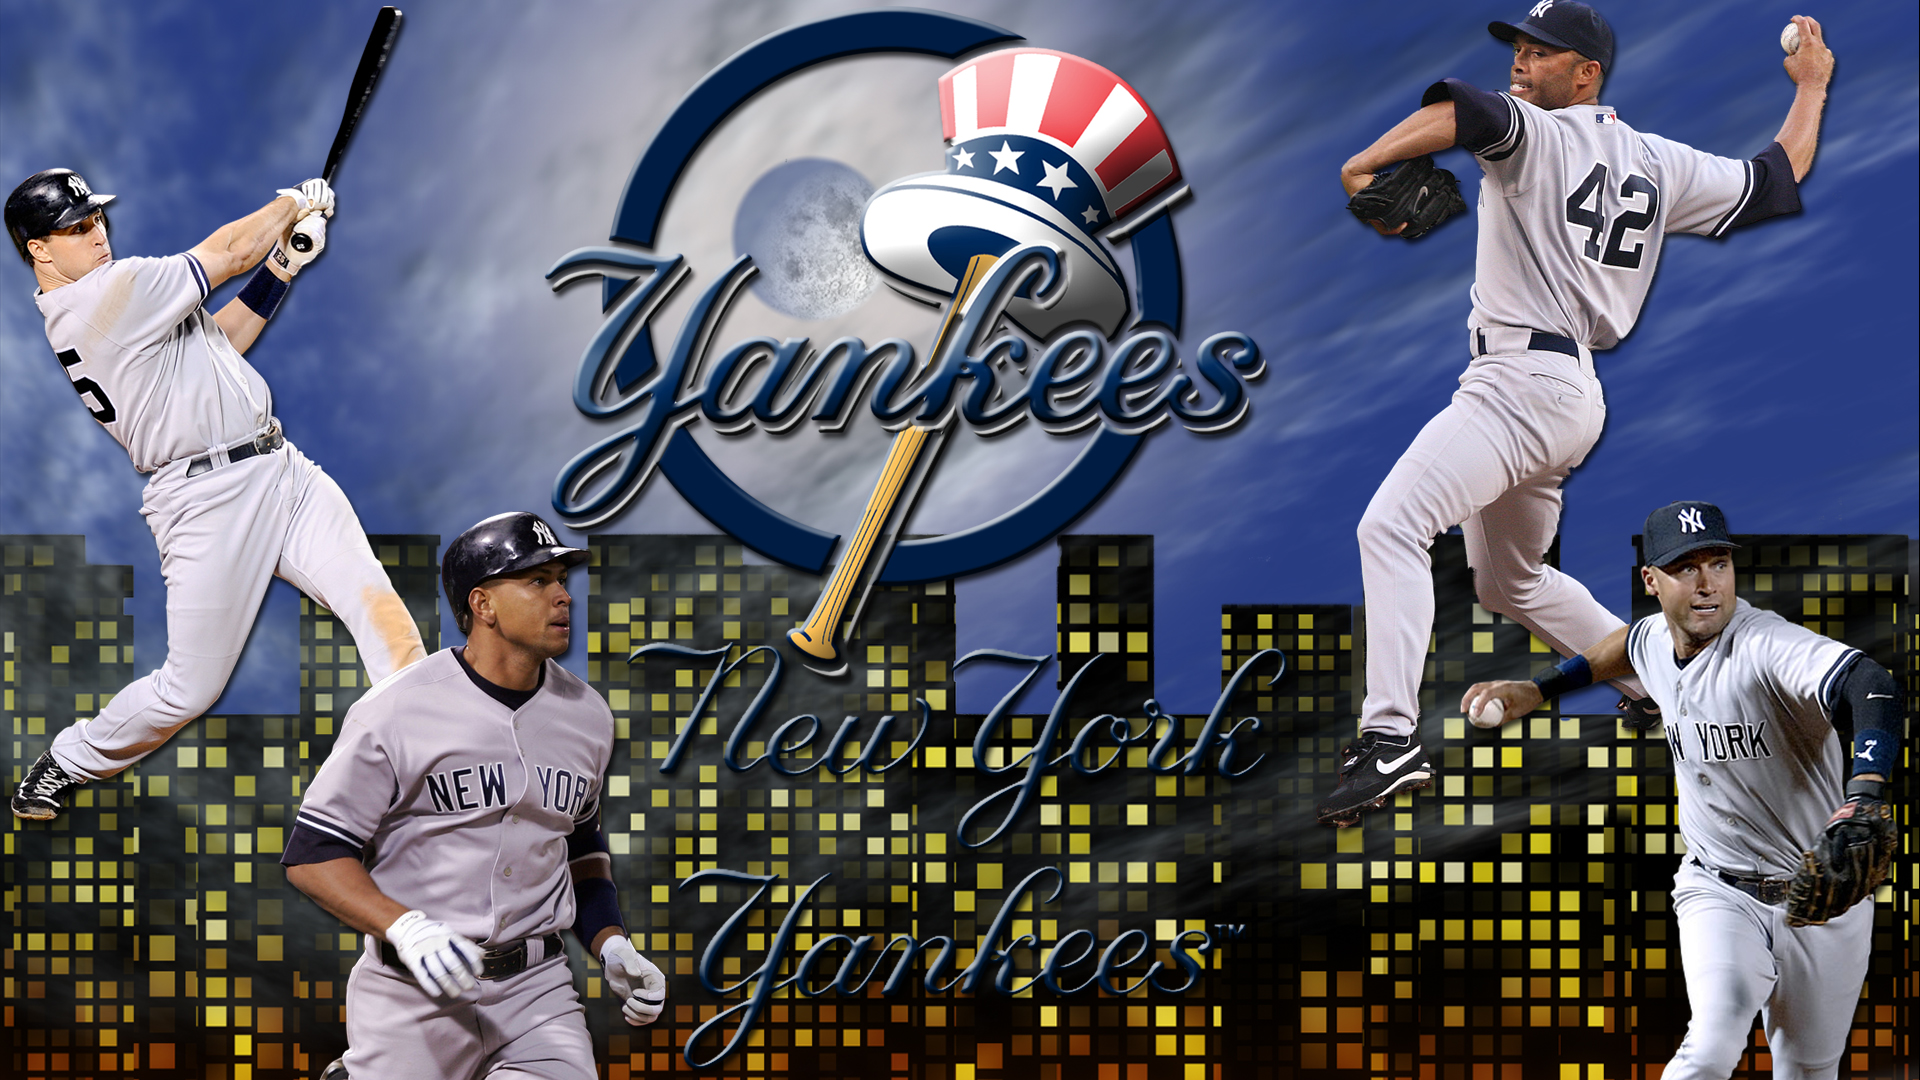 yankees iphone 4 wallpaper